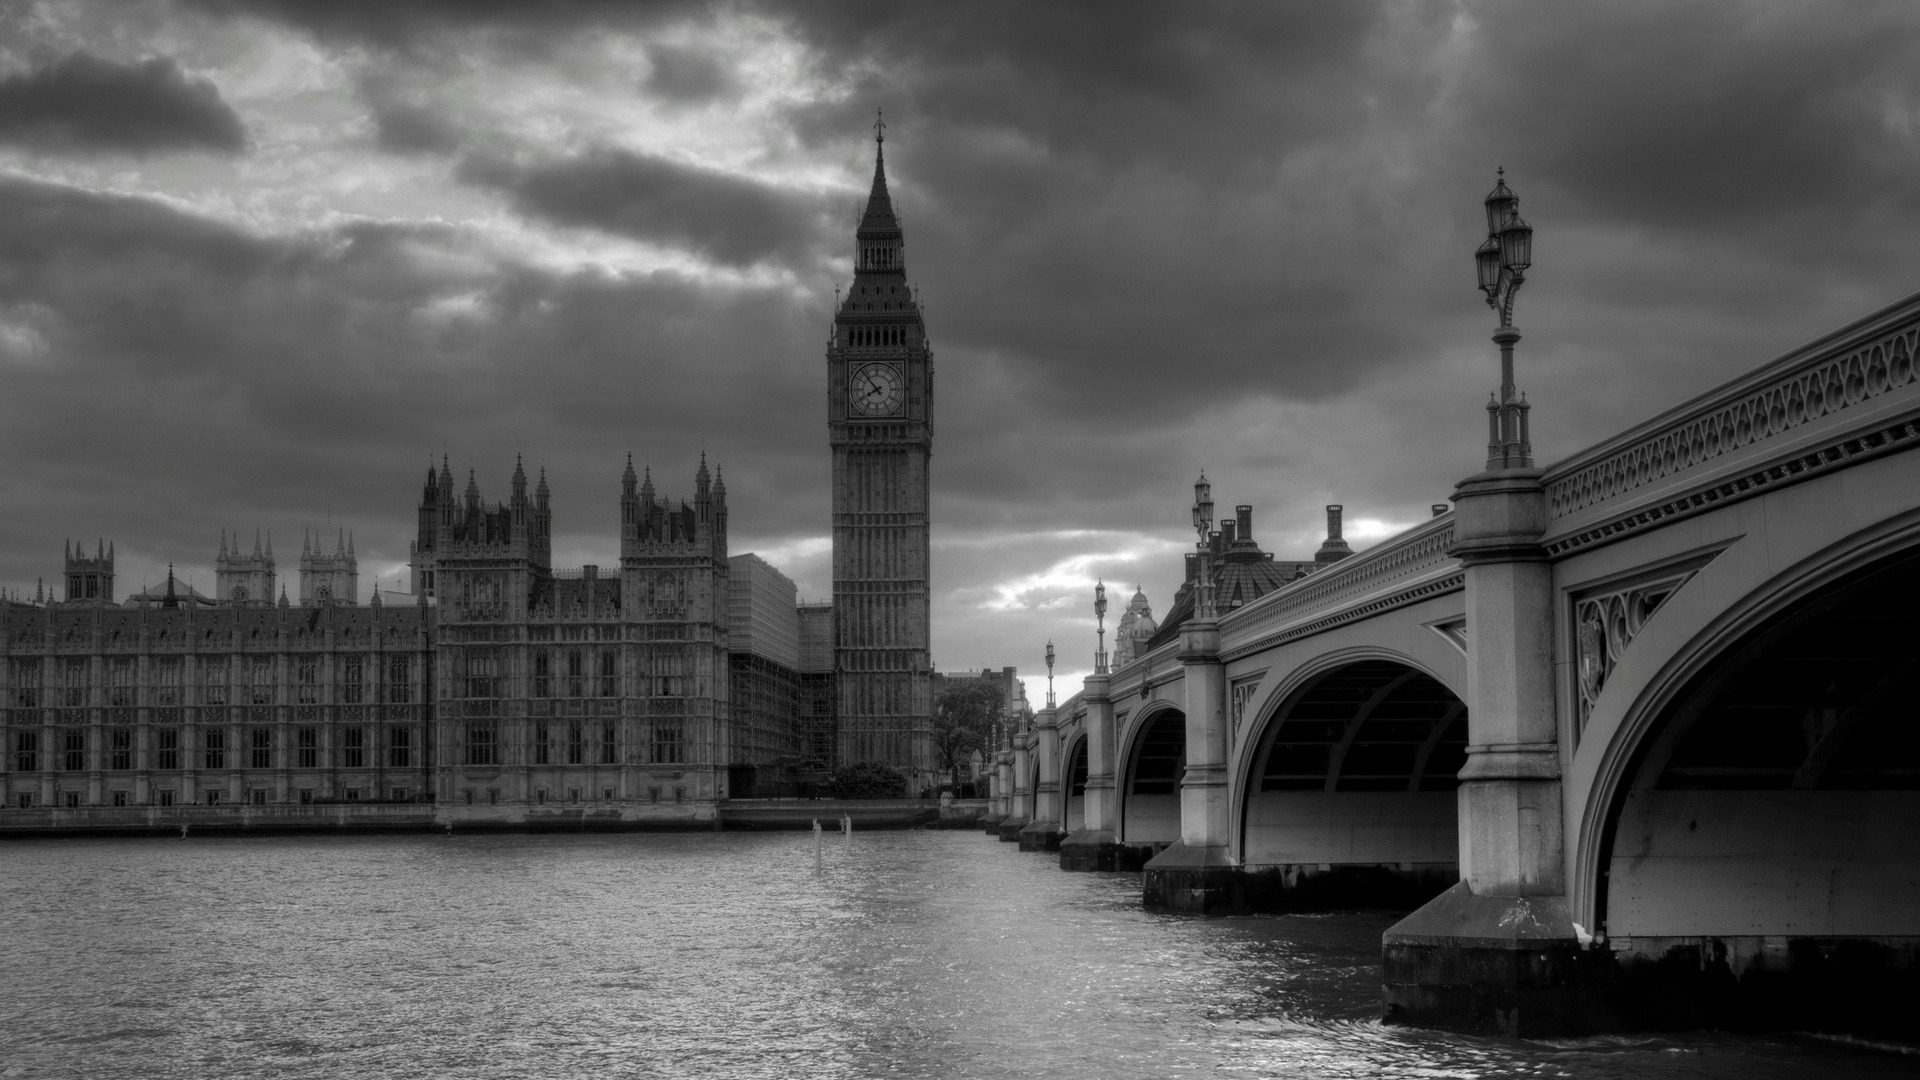 Amazing Wallpapers For Desktop Hd Free Download 47 Most Beautiful London Wallpapers In Hd For Free Download